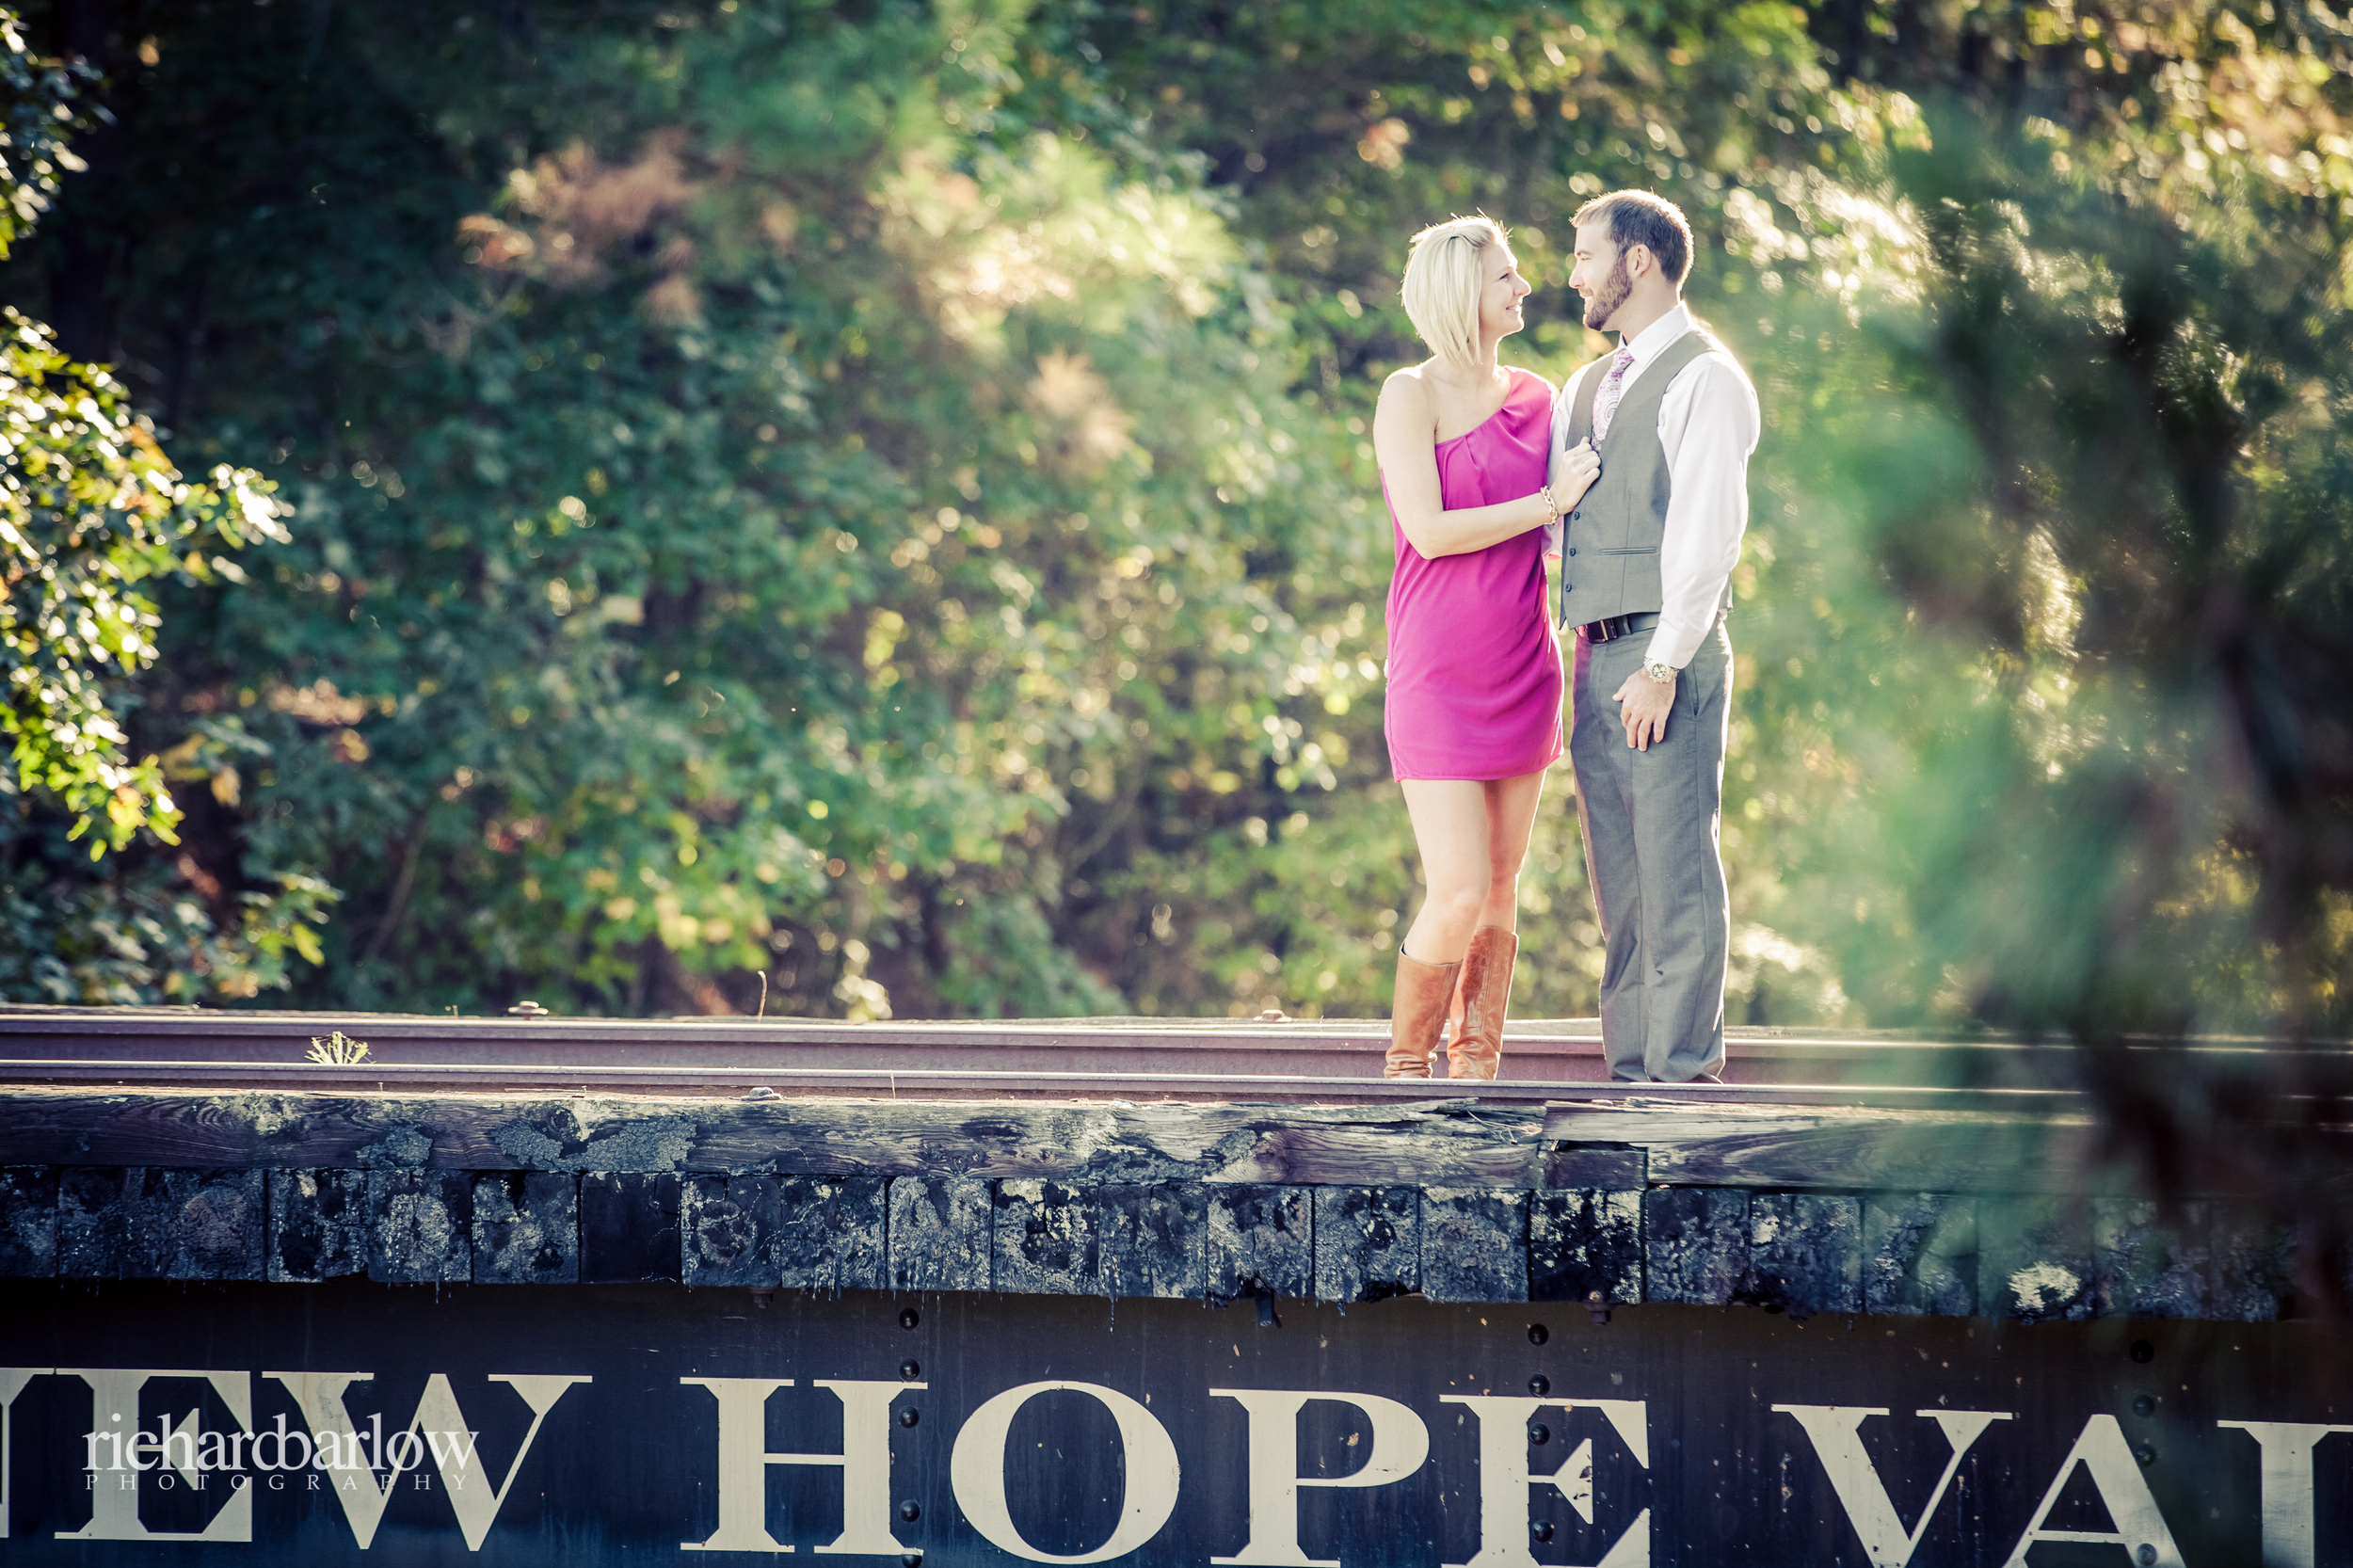 richard barlow photography - Mike and Renee Engagement Session NC-5.jpg